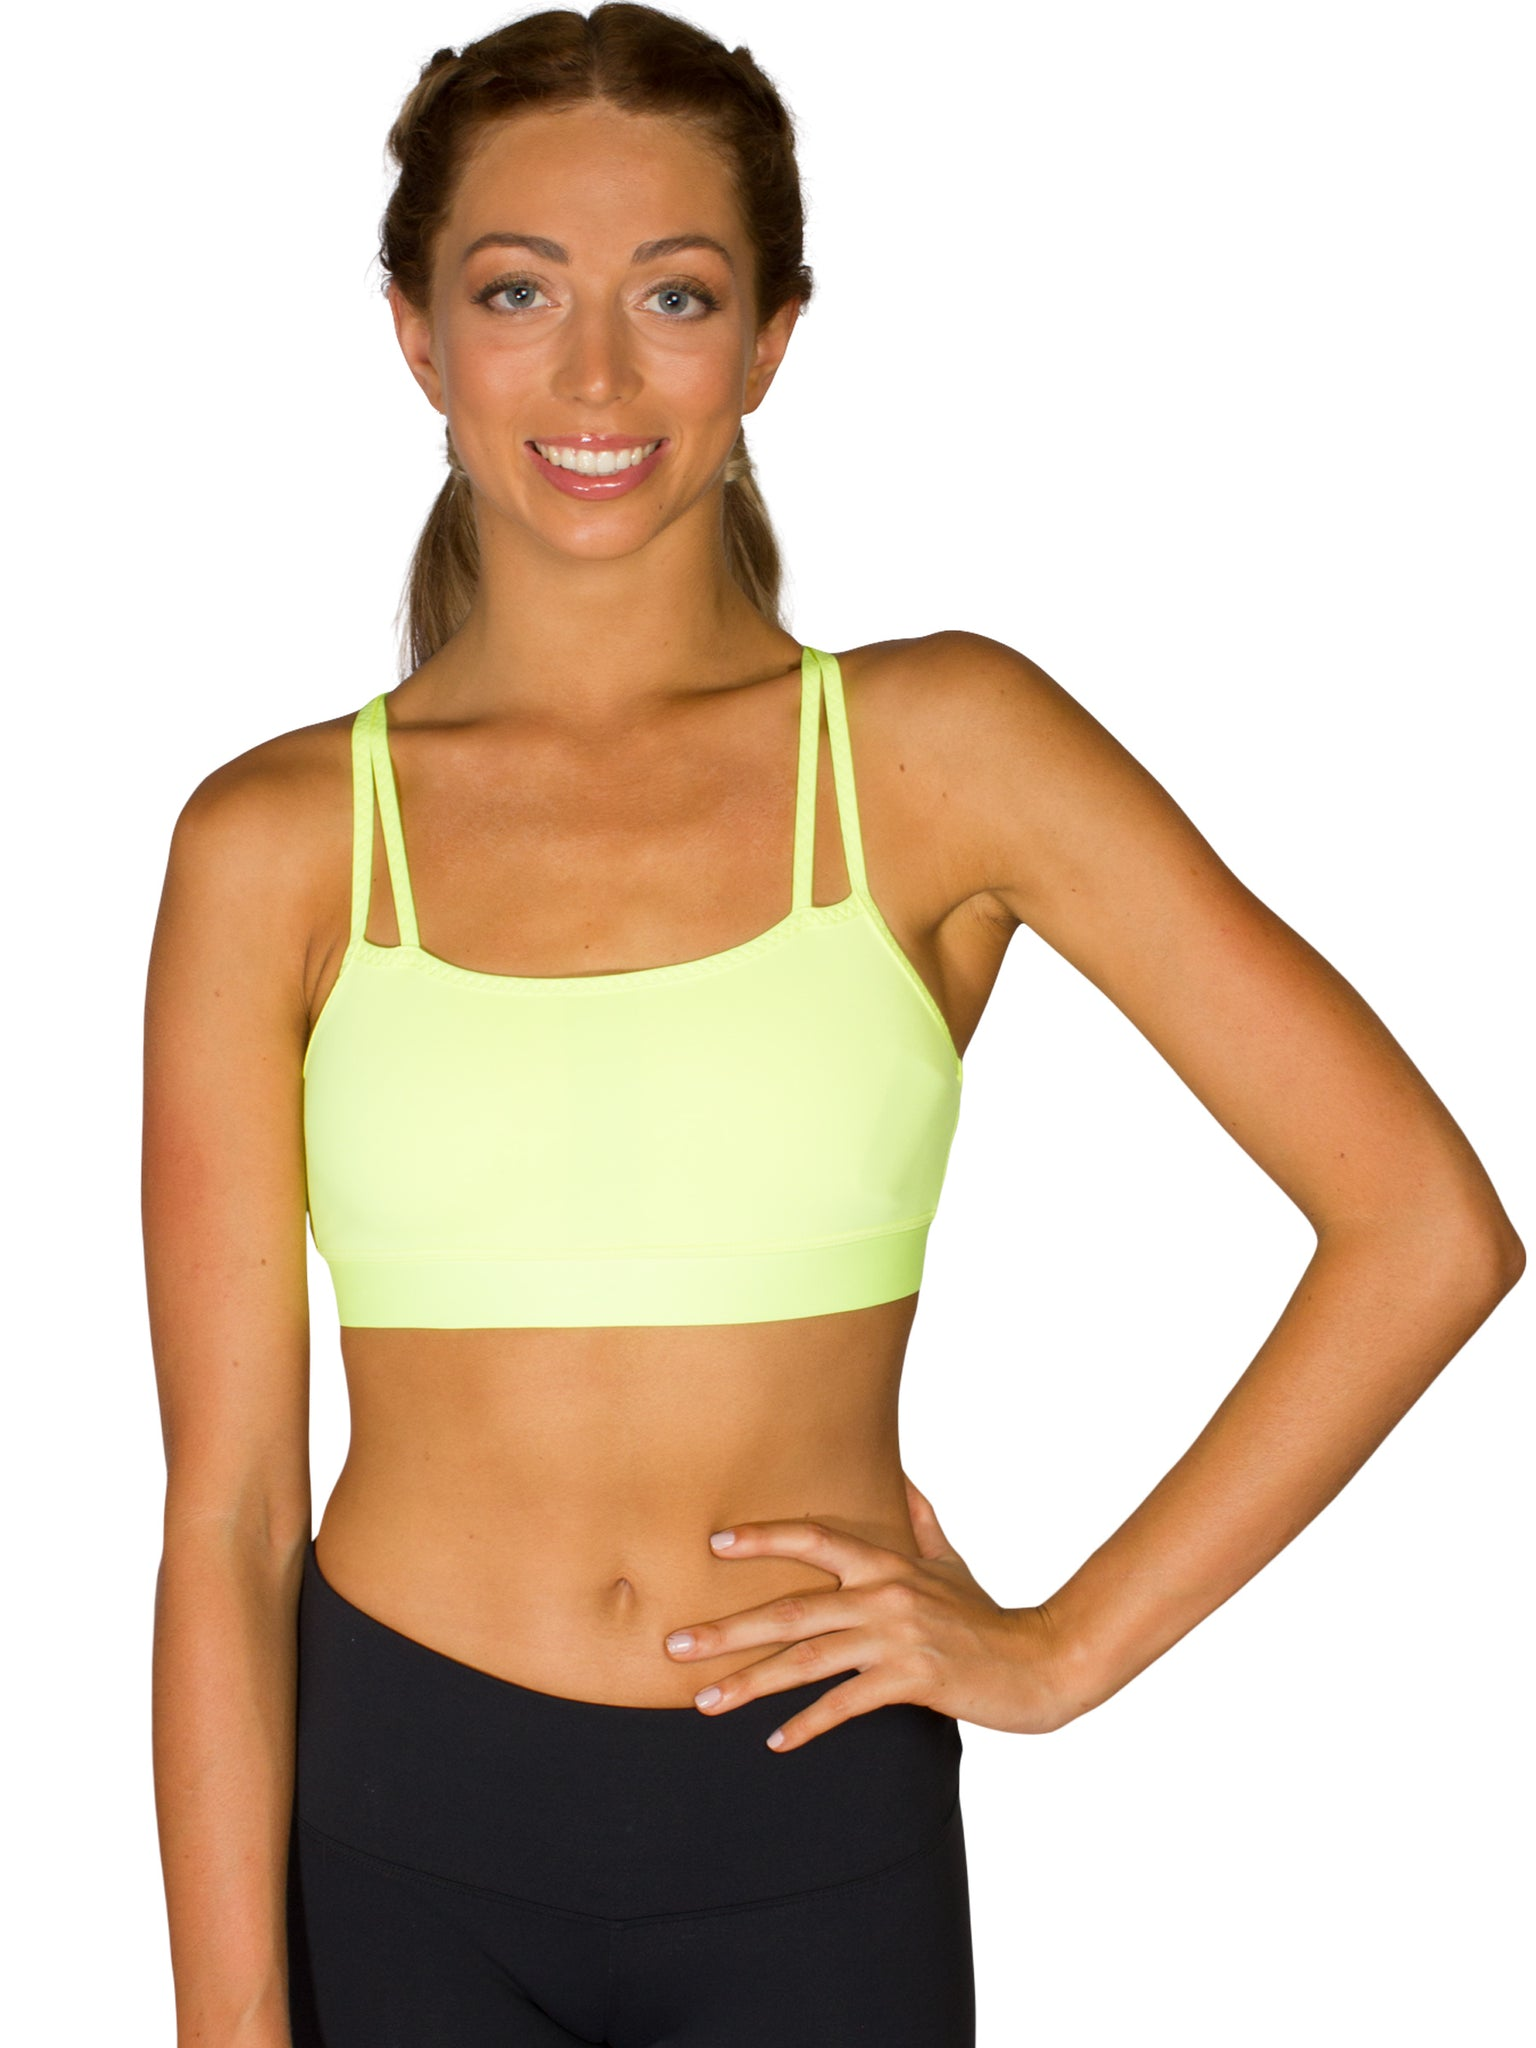 DOUBLE STRAP SUPPORT LOCALLY MADE SPORTS BRA - NEON LEMON